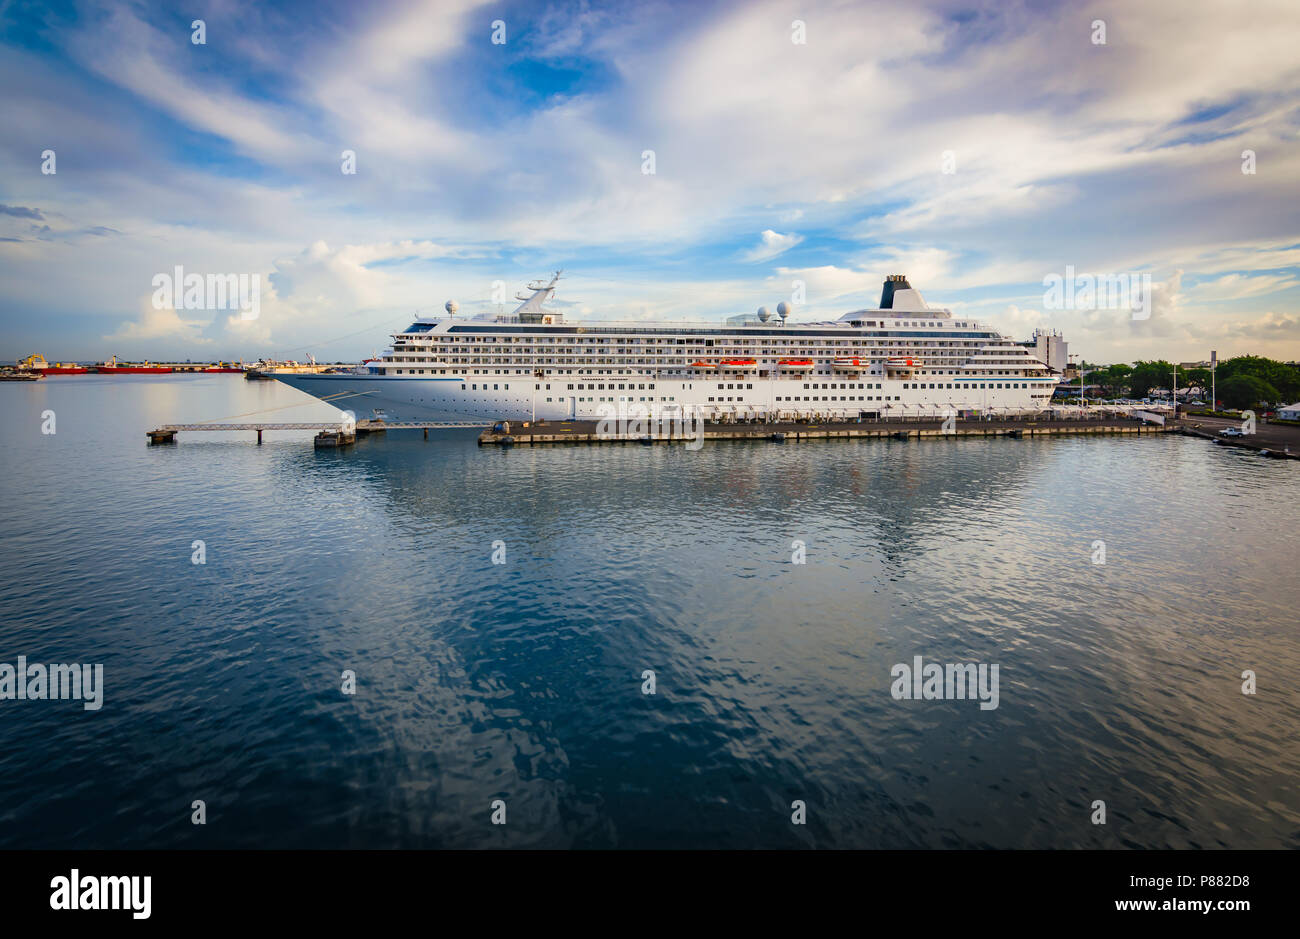 Luxury cruise ship docked in port. Stock Photo